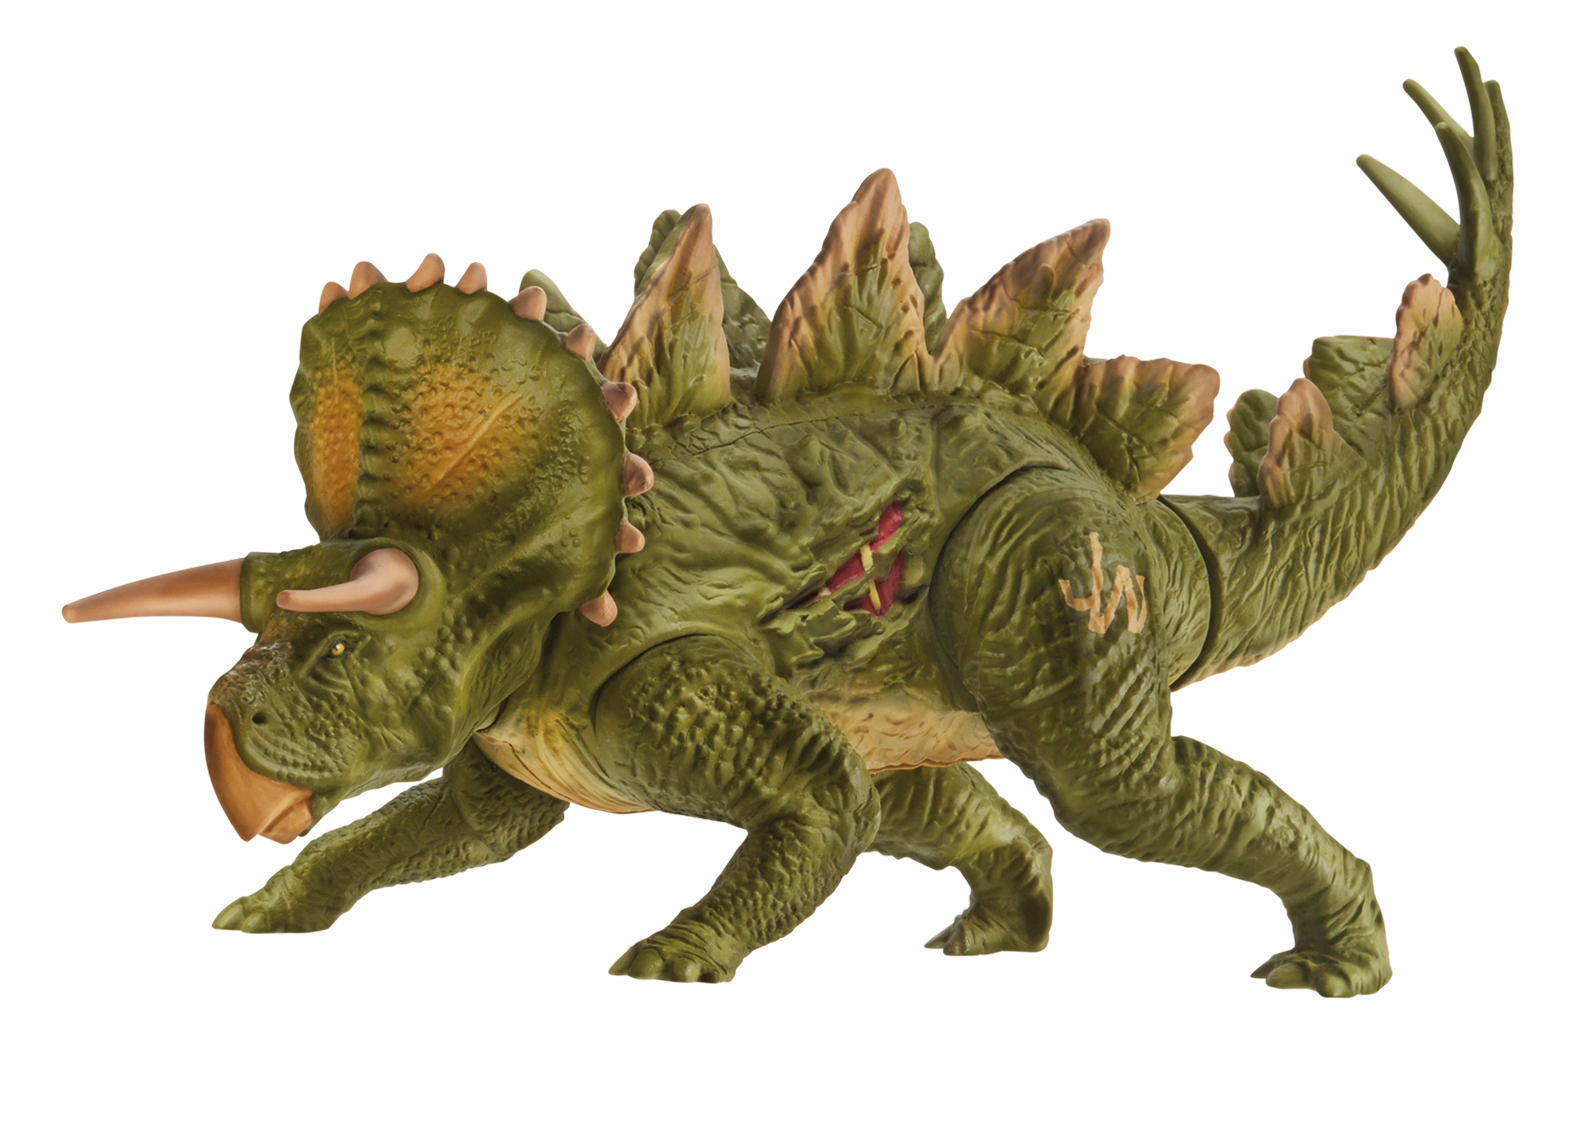 006 Jurassic World Toy Fair Nyc Hasbro Loose Boxed Images Needless Essentials Onlineneedless